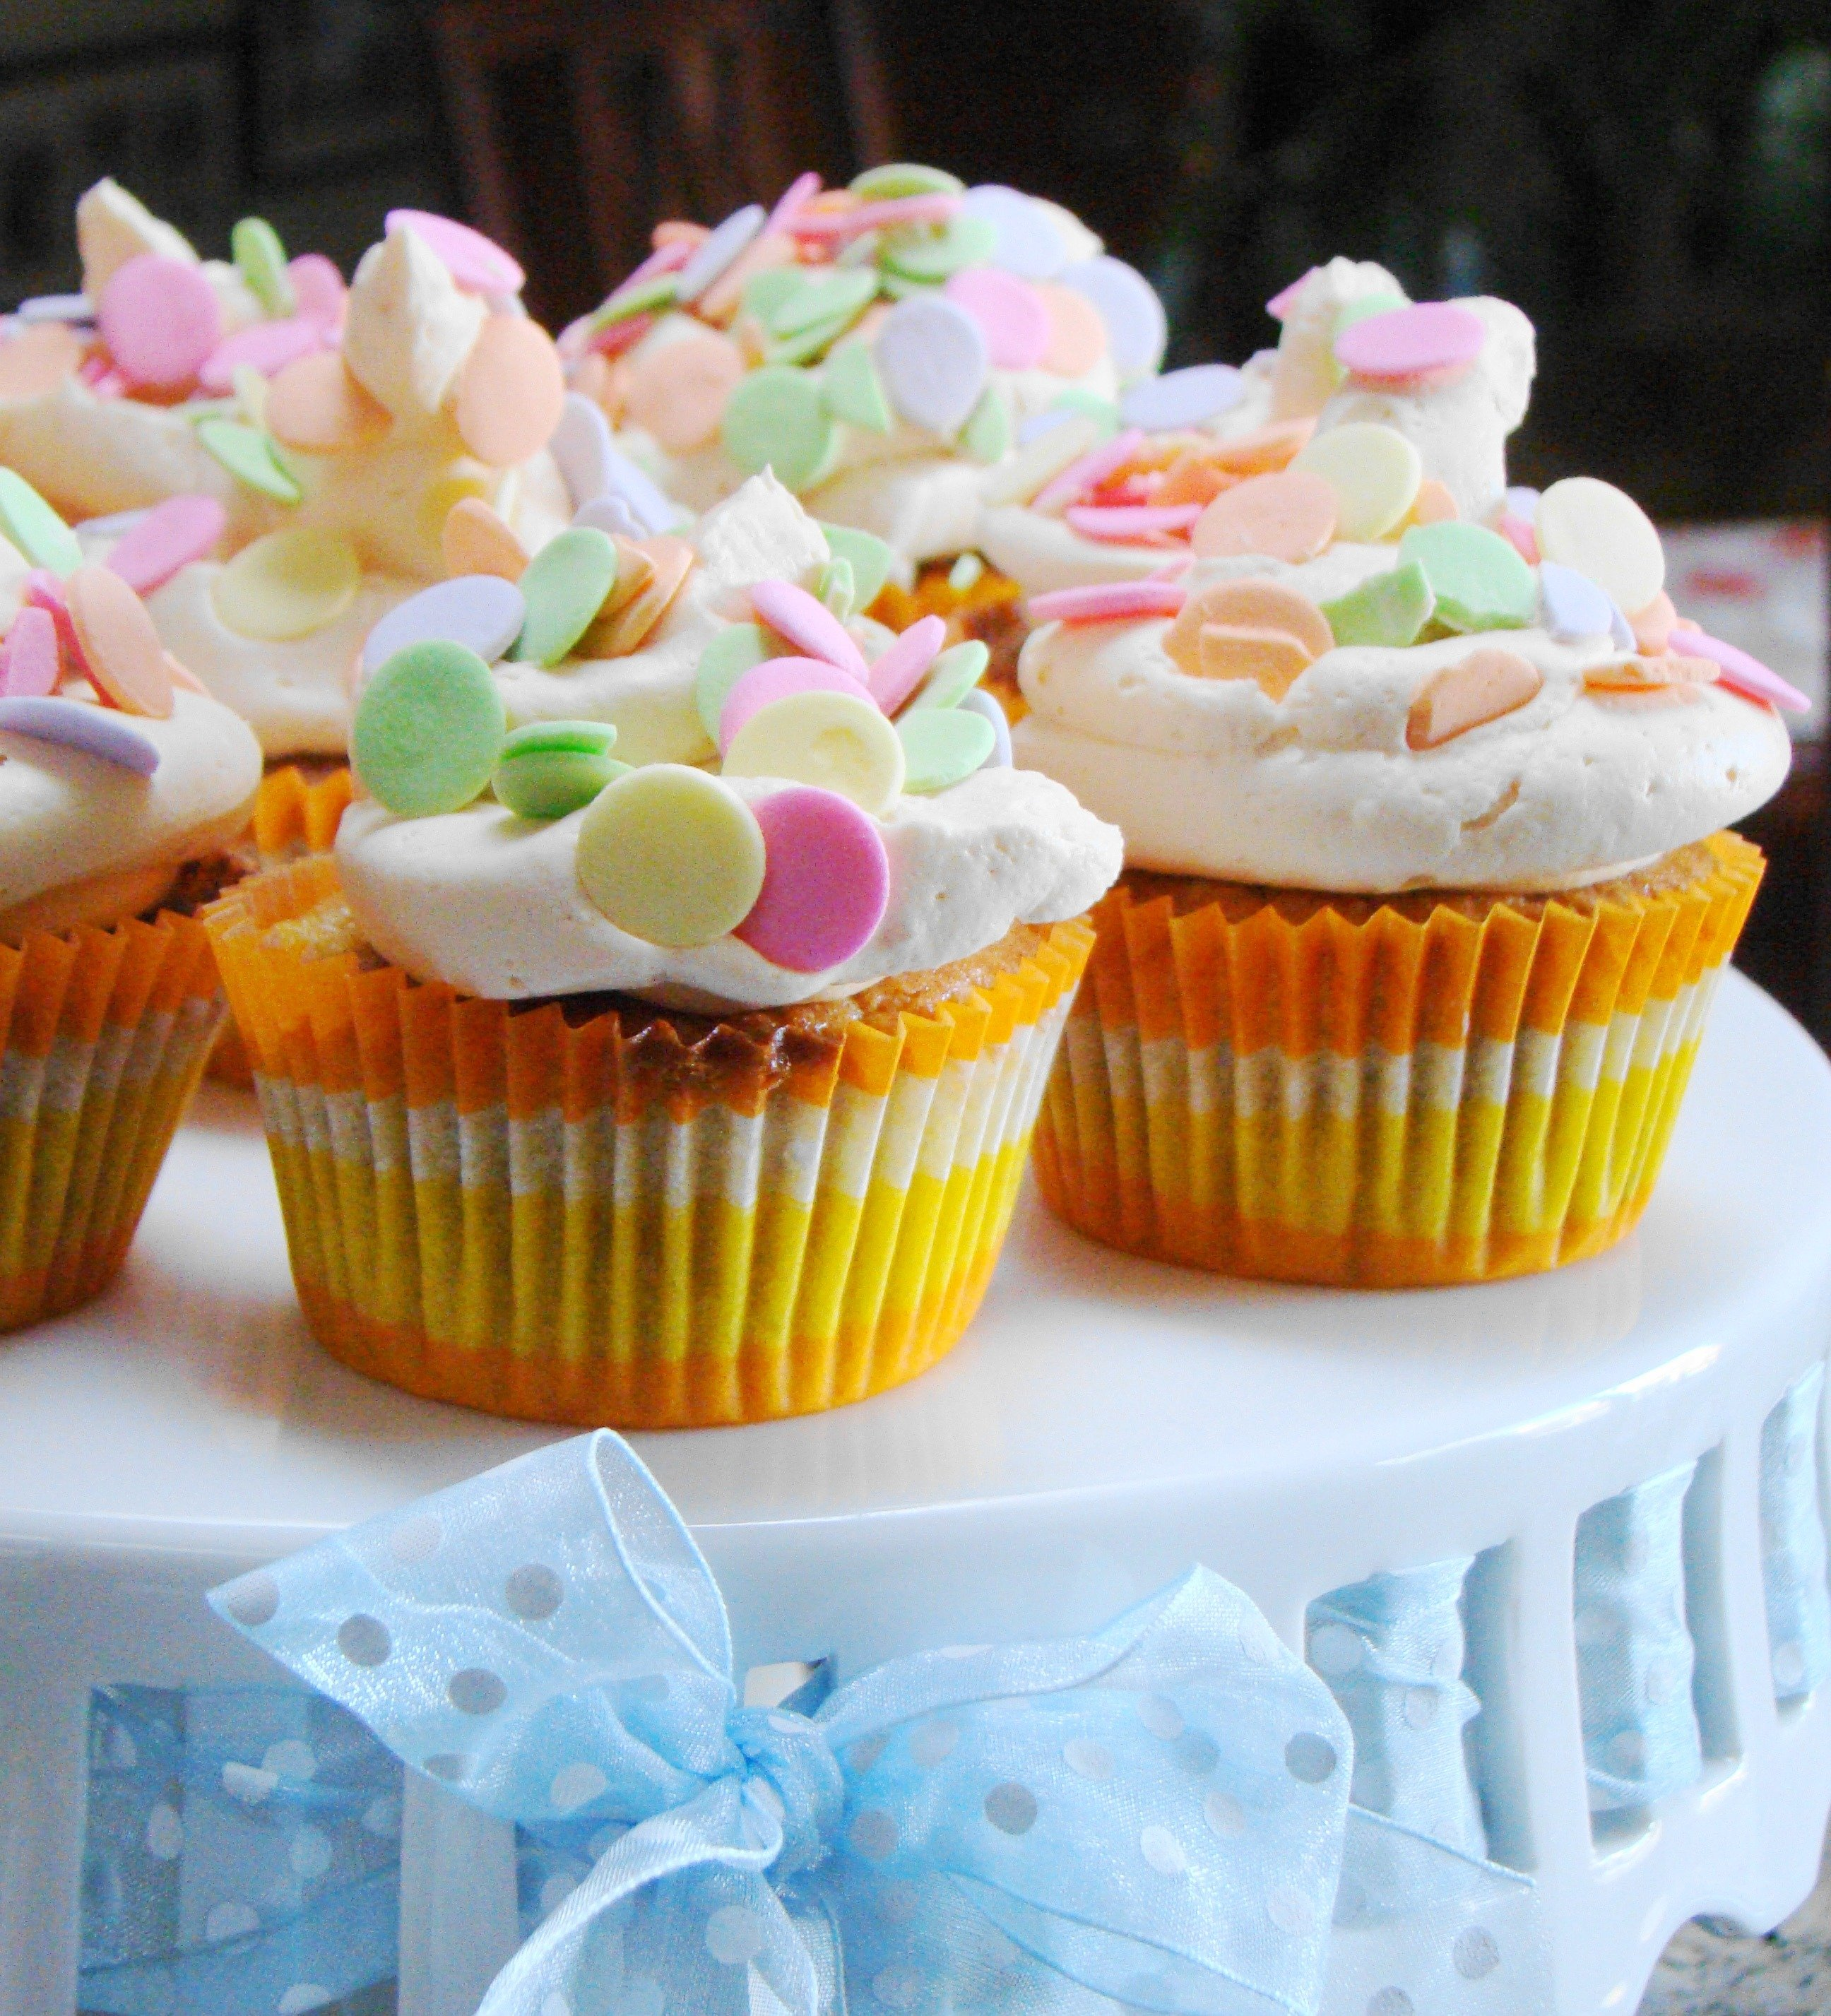 Ginger_Mango_cupcakes_with_Polka_Dots_with_blue_ribbon_in_bow